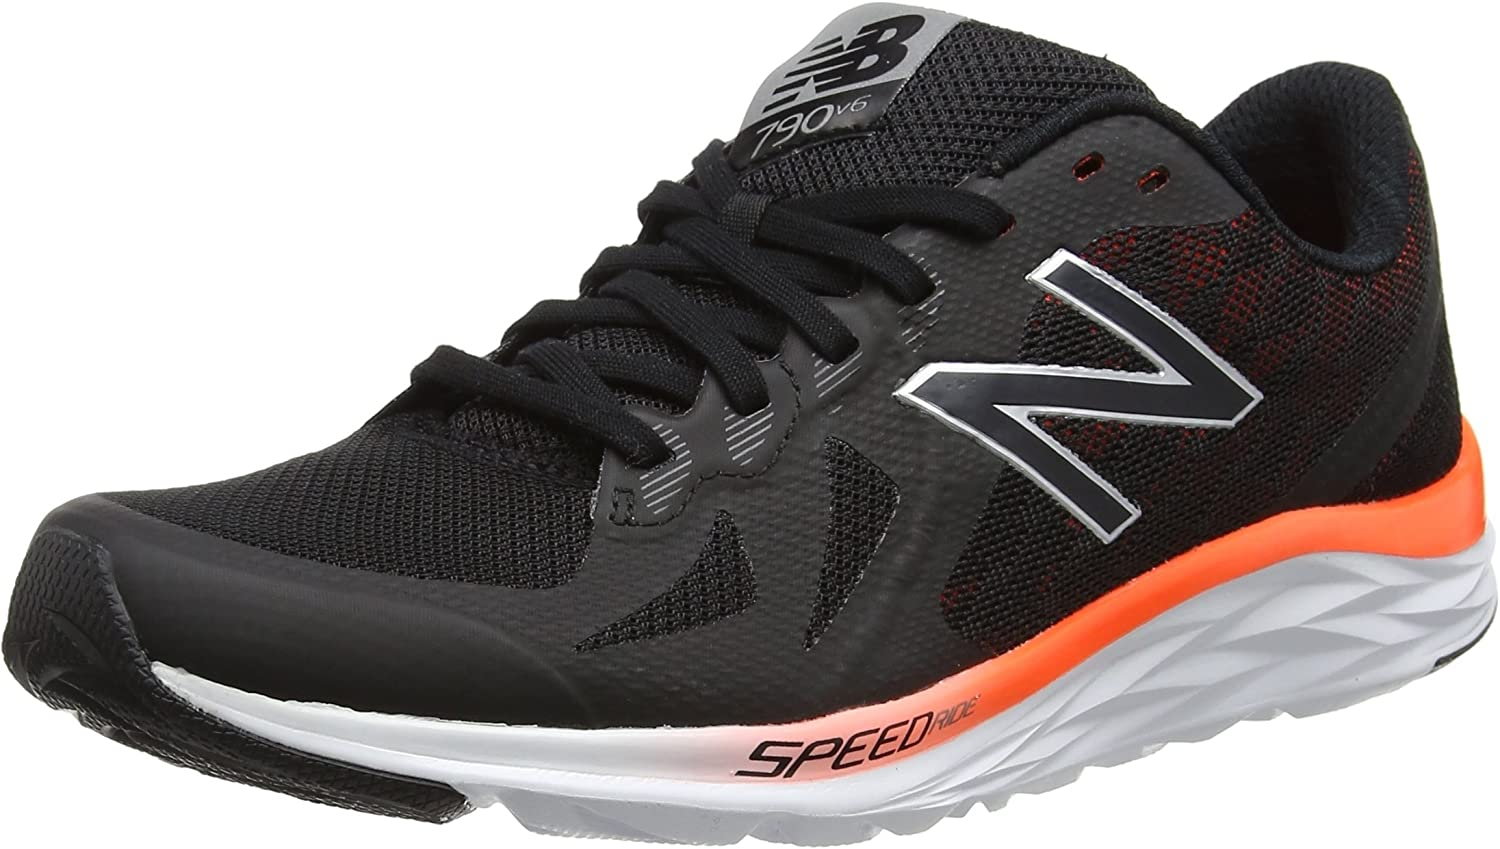 New Balance Men's M790 Running shoes